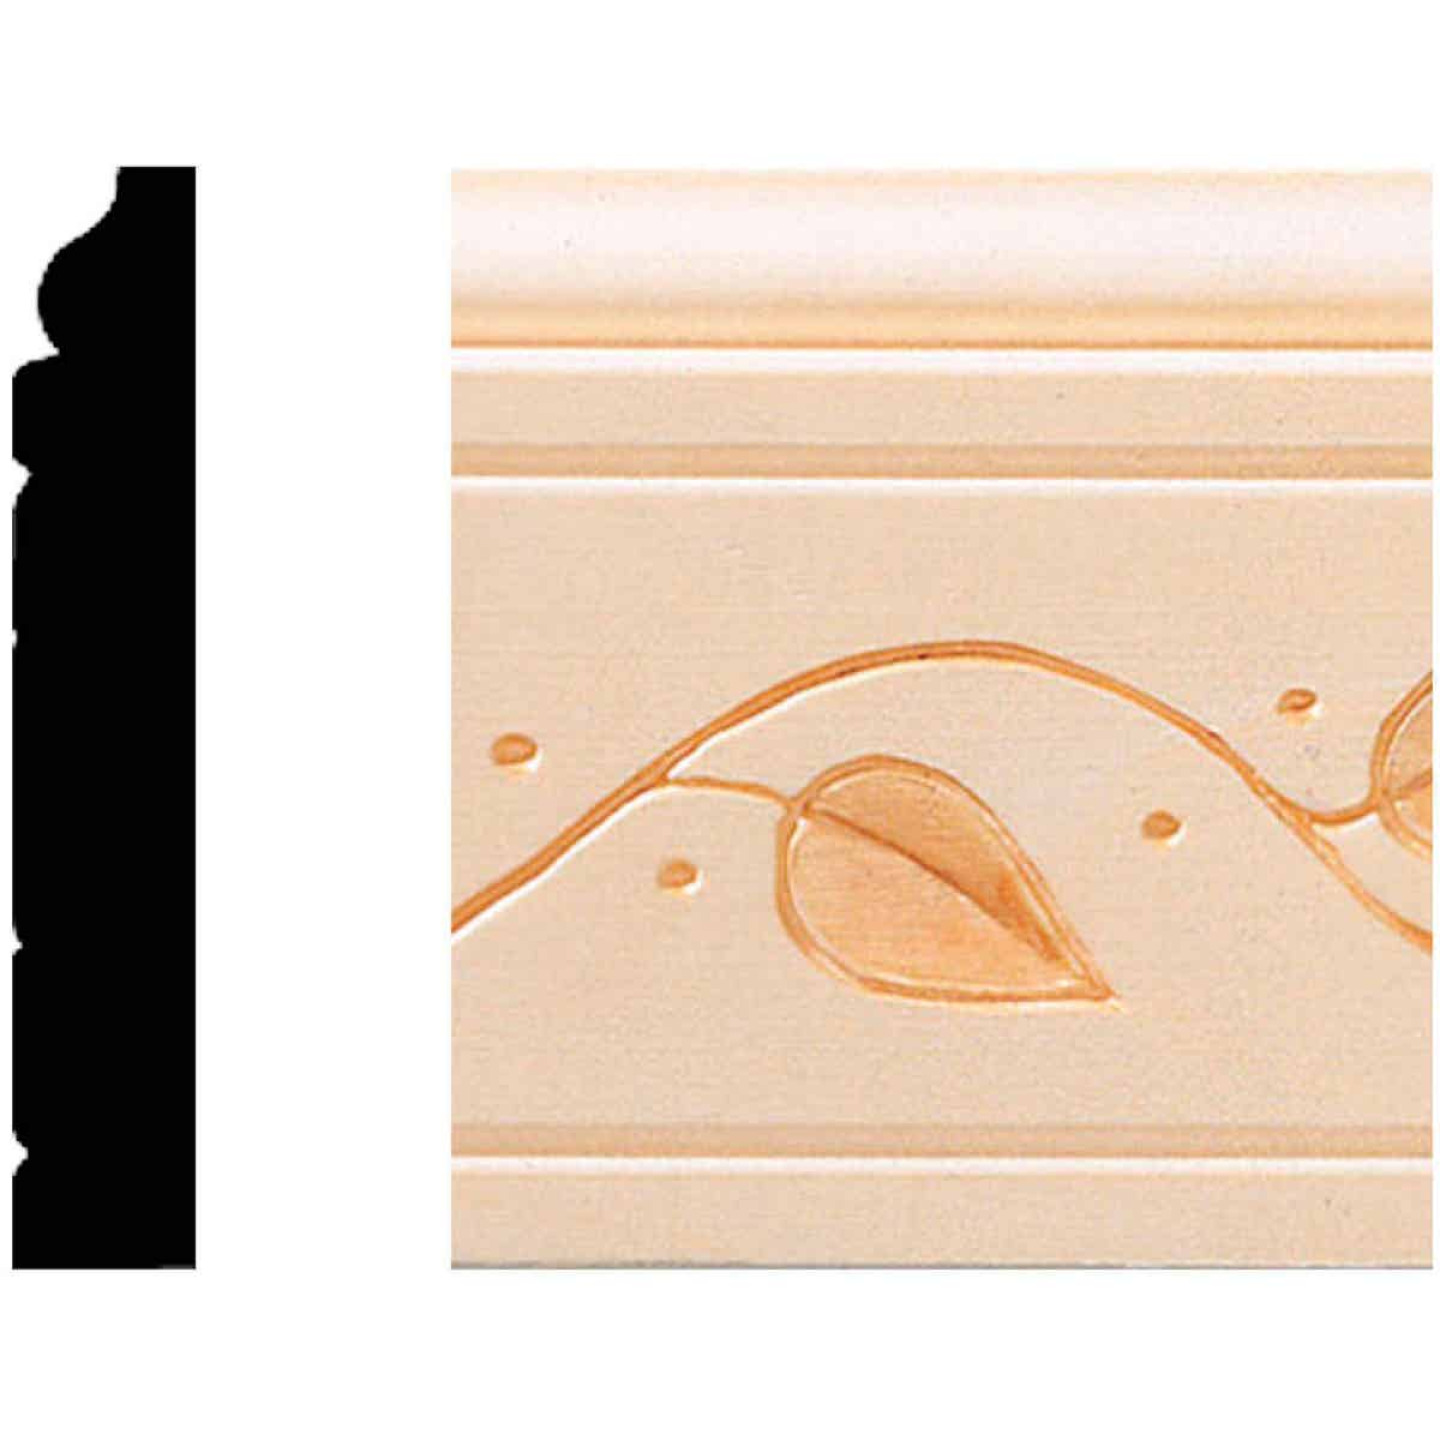 House of Fara 29/64 In. W. x 3 In. H. x 8 Ft. L. Decorative Vine Base Molding Image 1